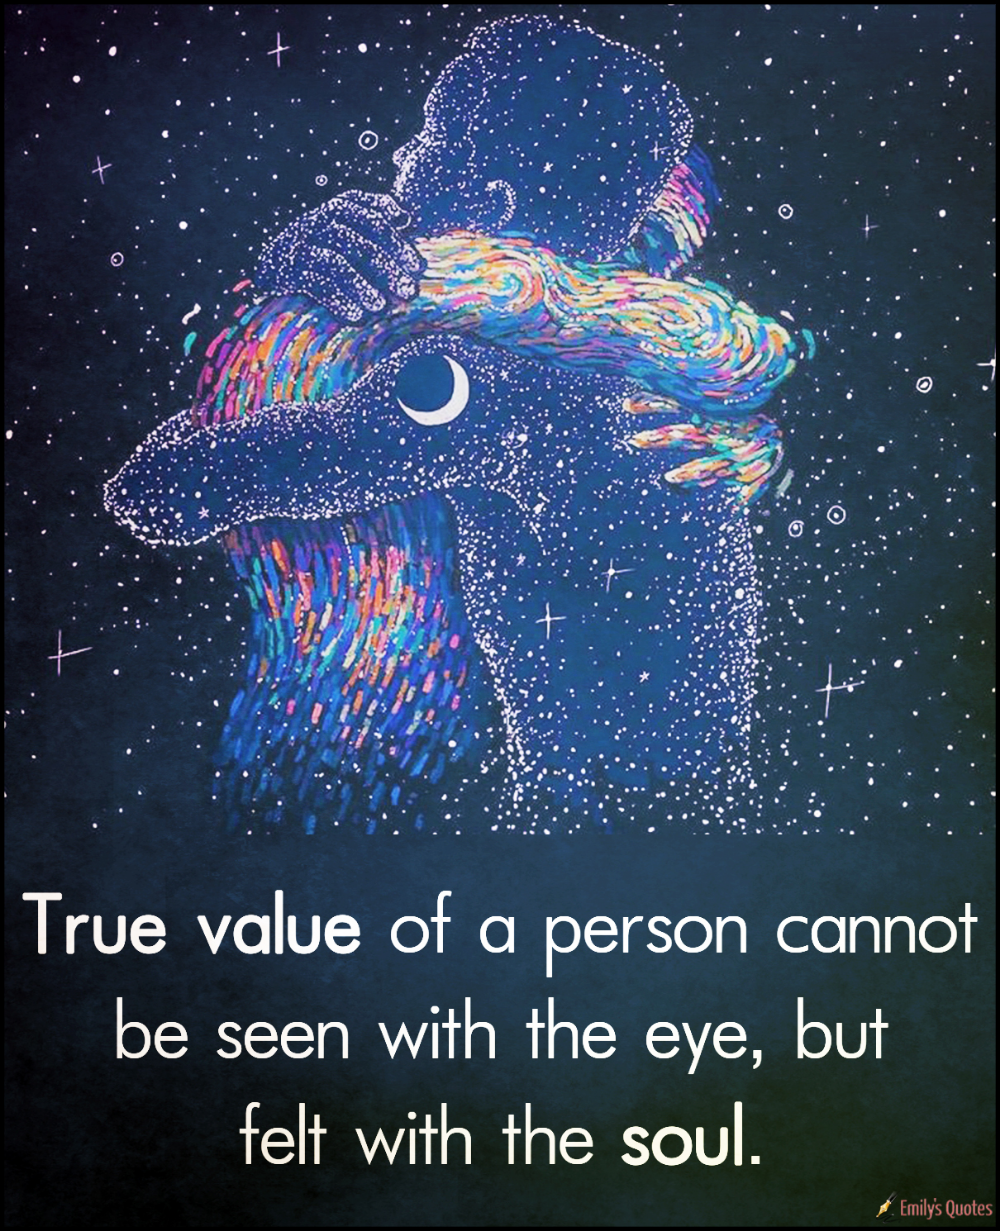 True value of a person cannot be seen with the eye, but felt with